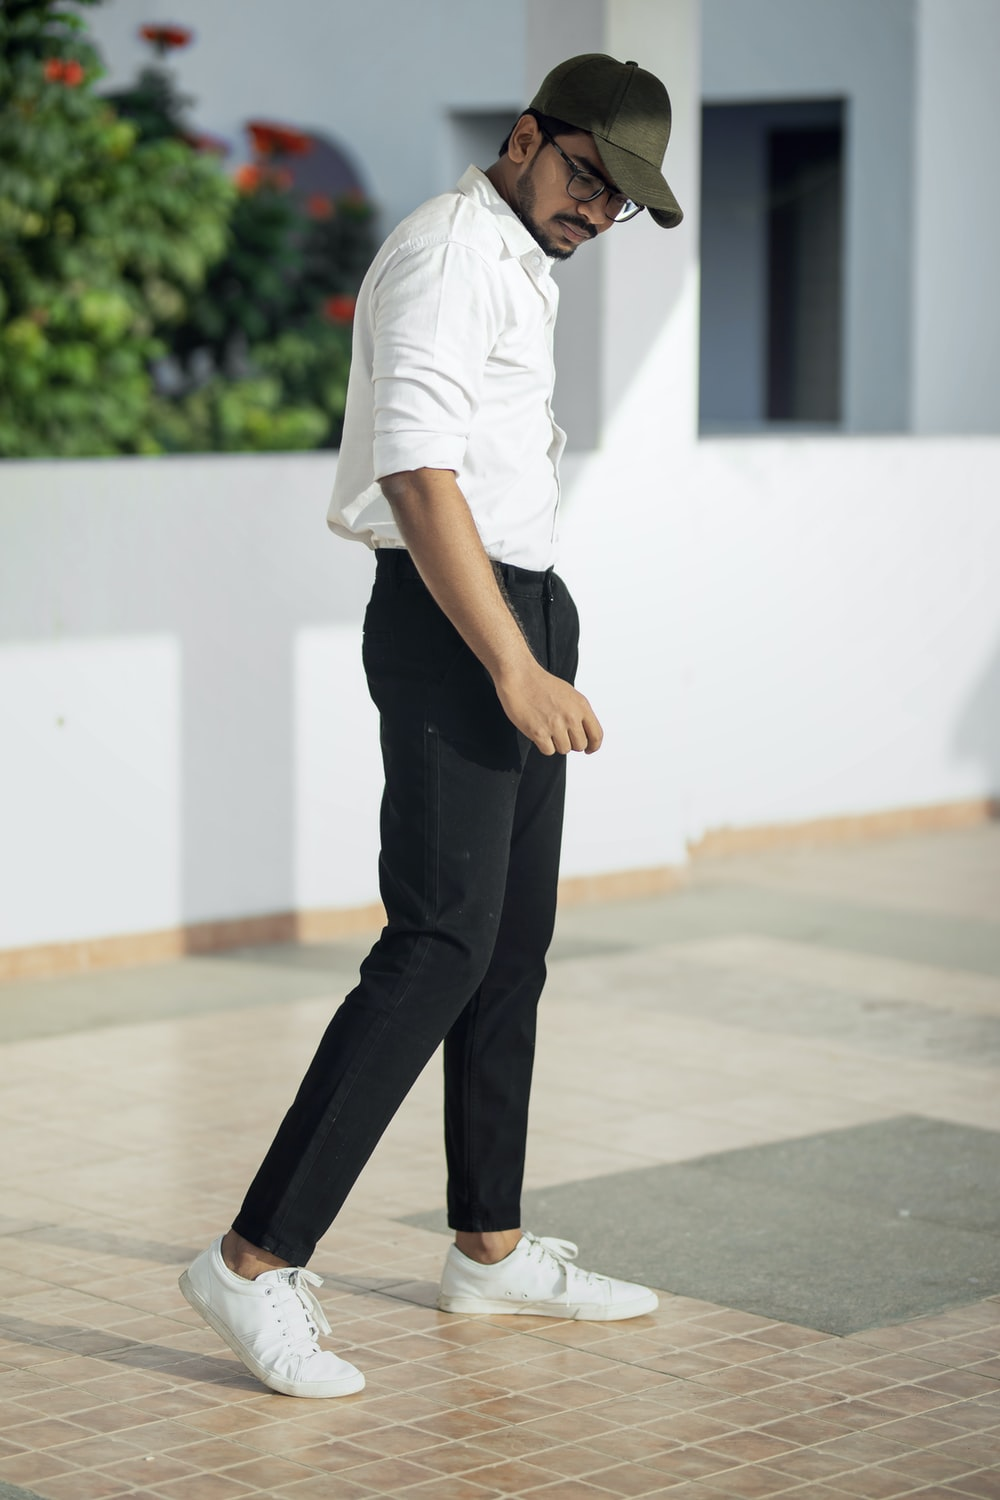 man in white t-shirt and black pants standing on white floor